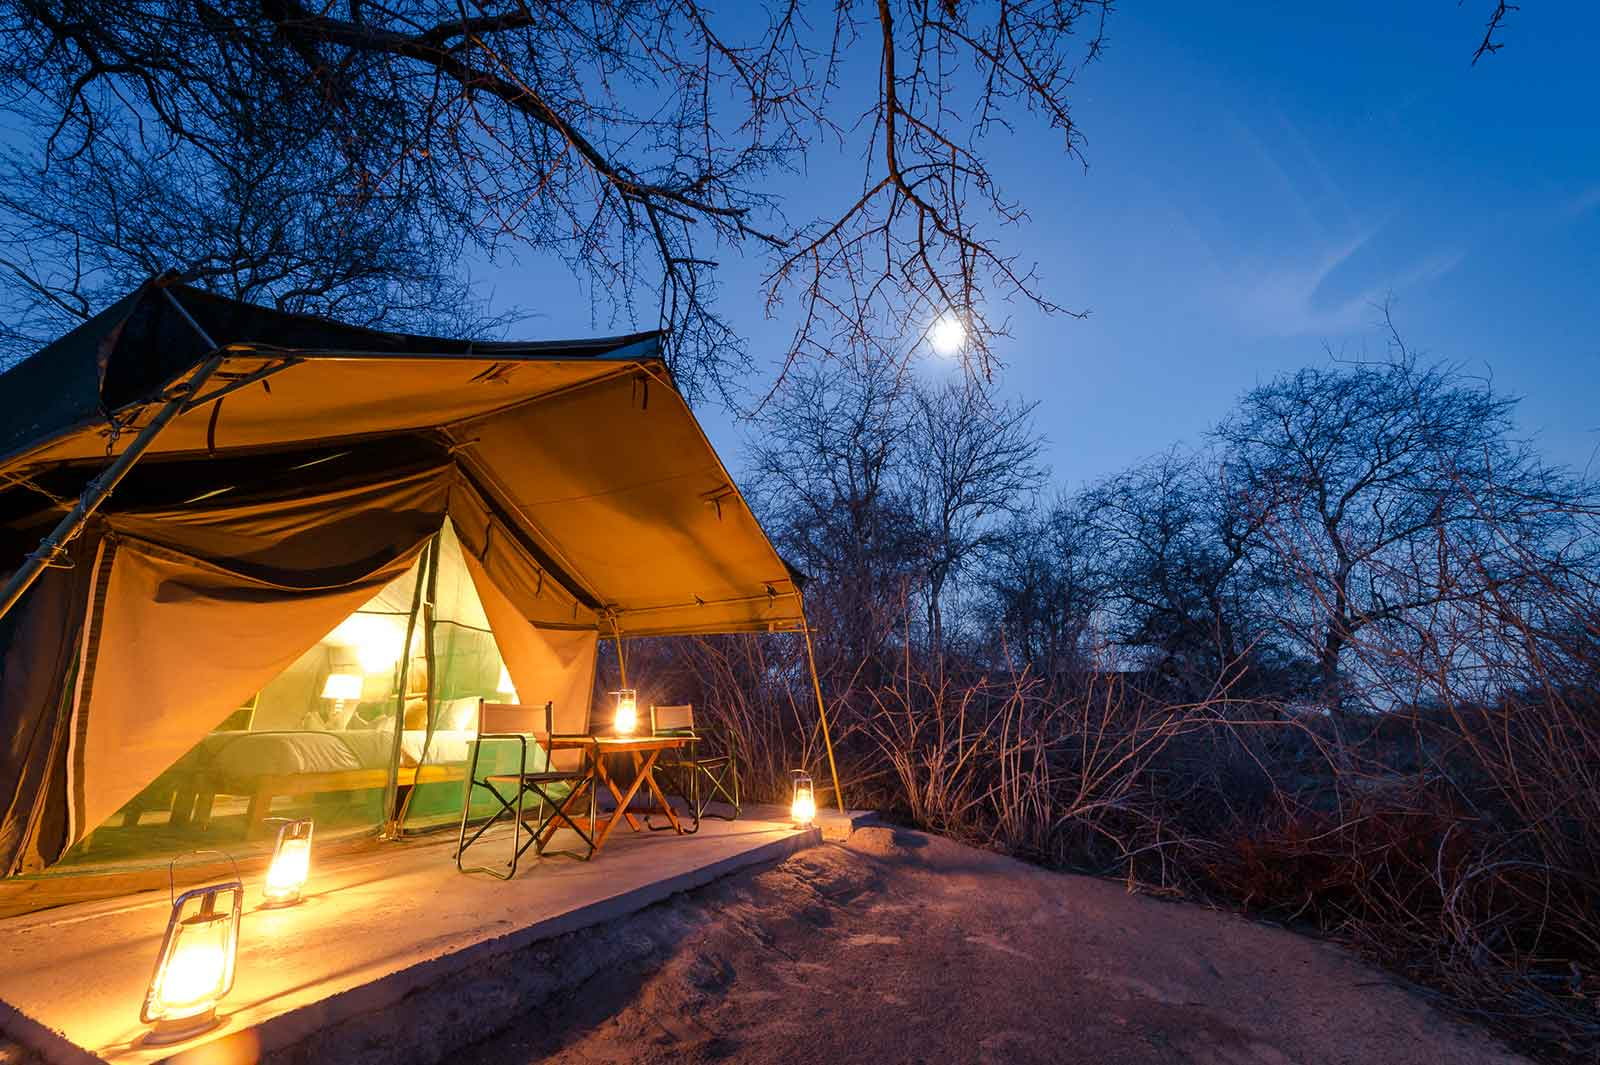 One of the 6 Meru-style Tuskers guest tents